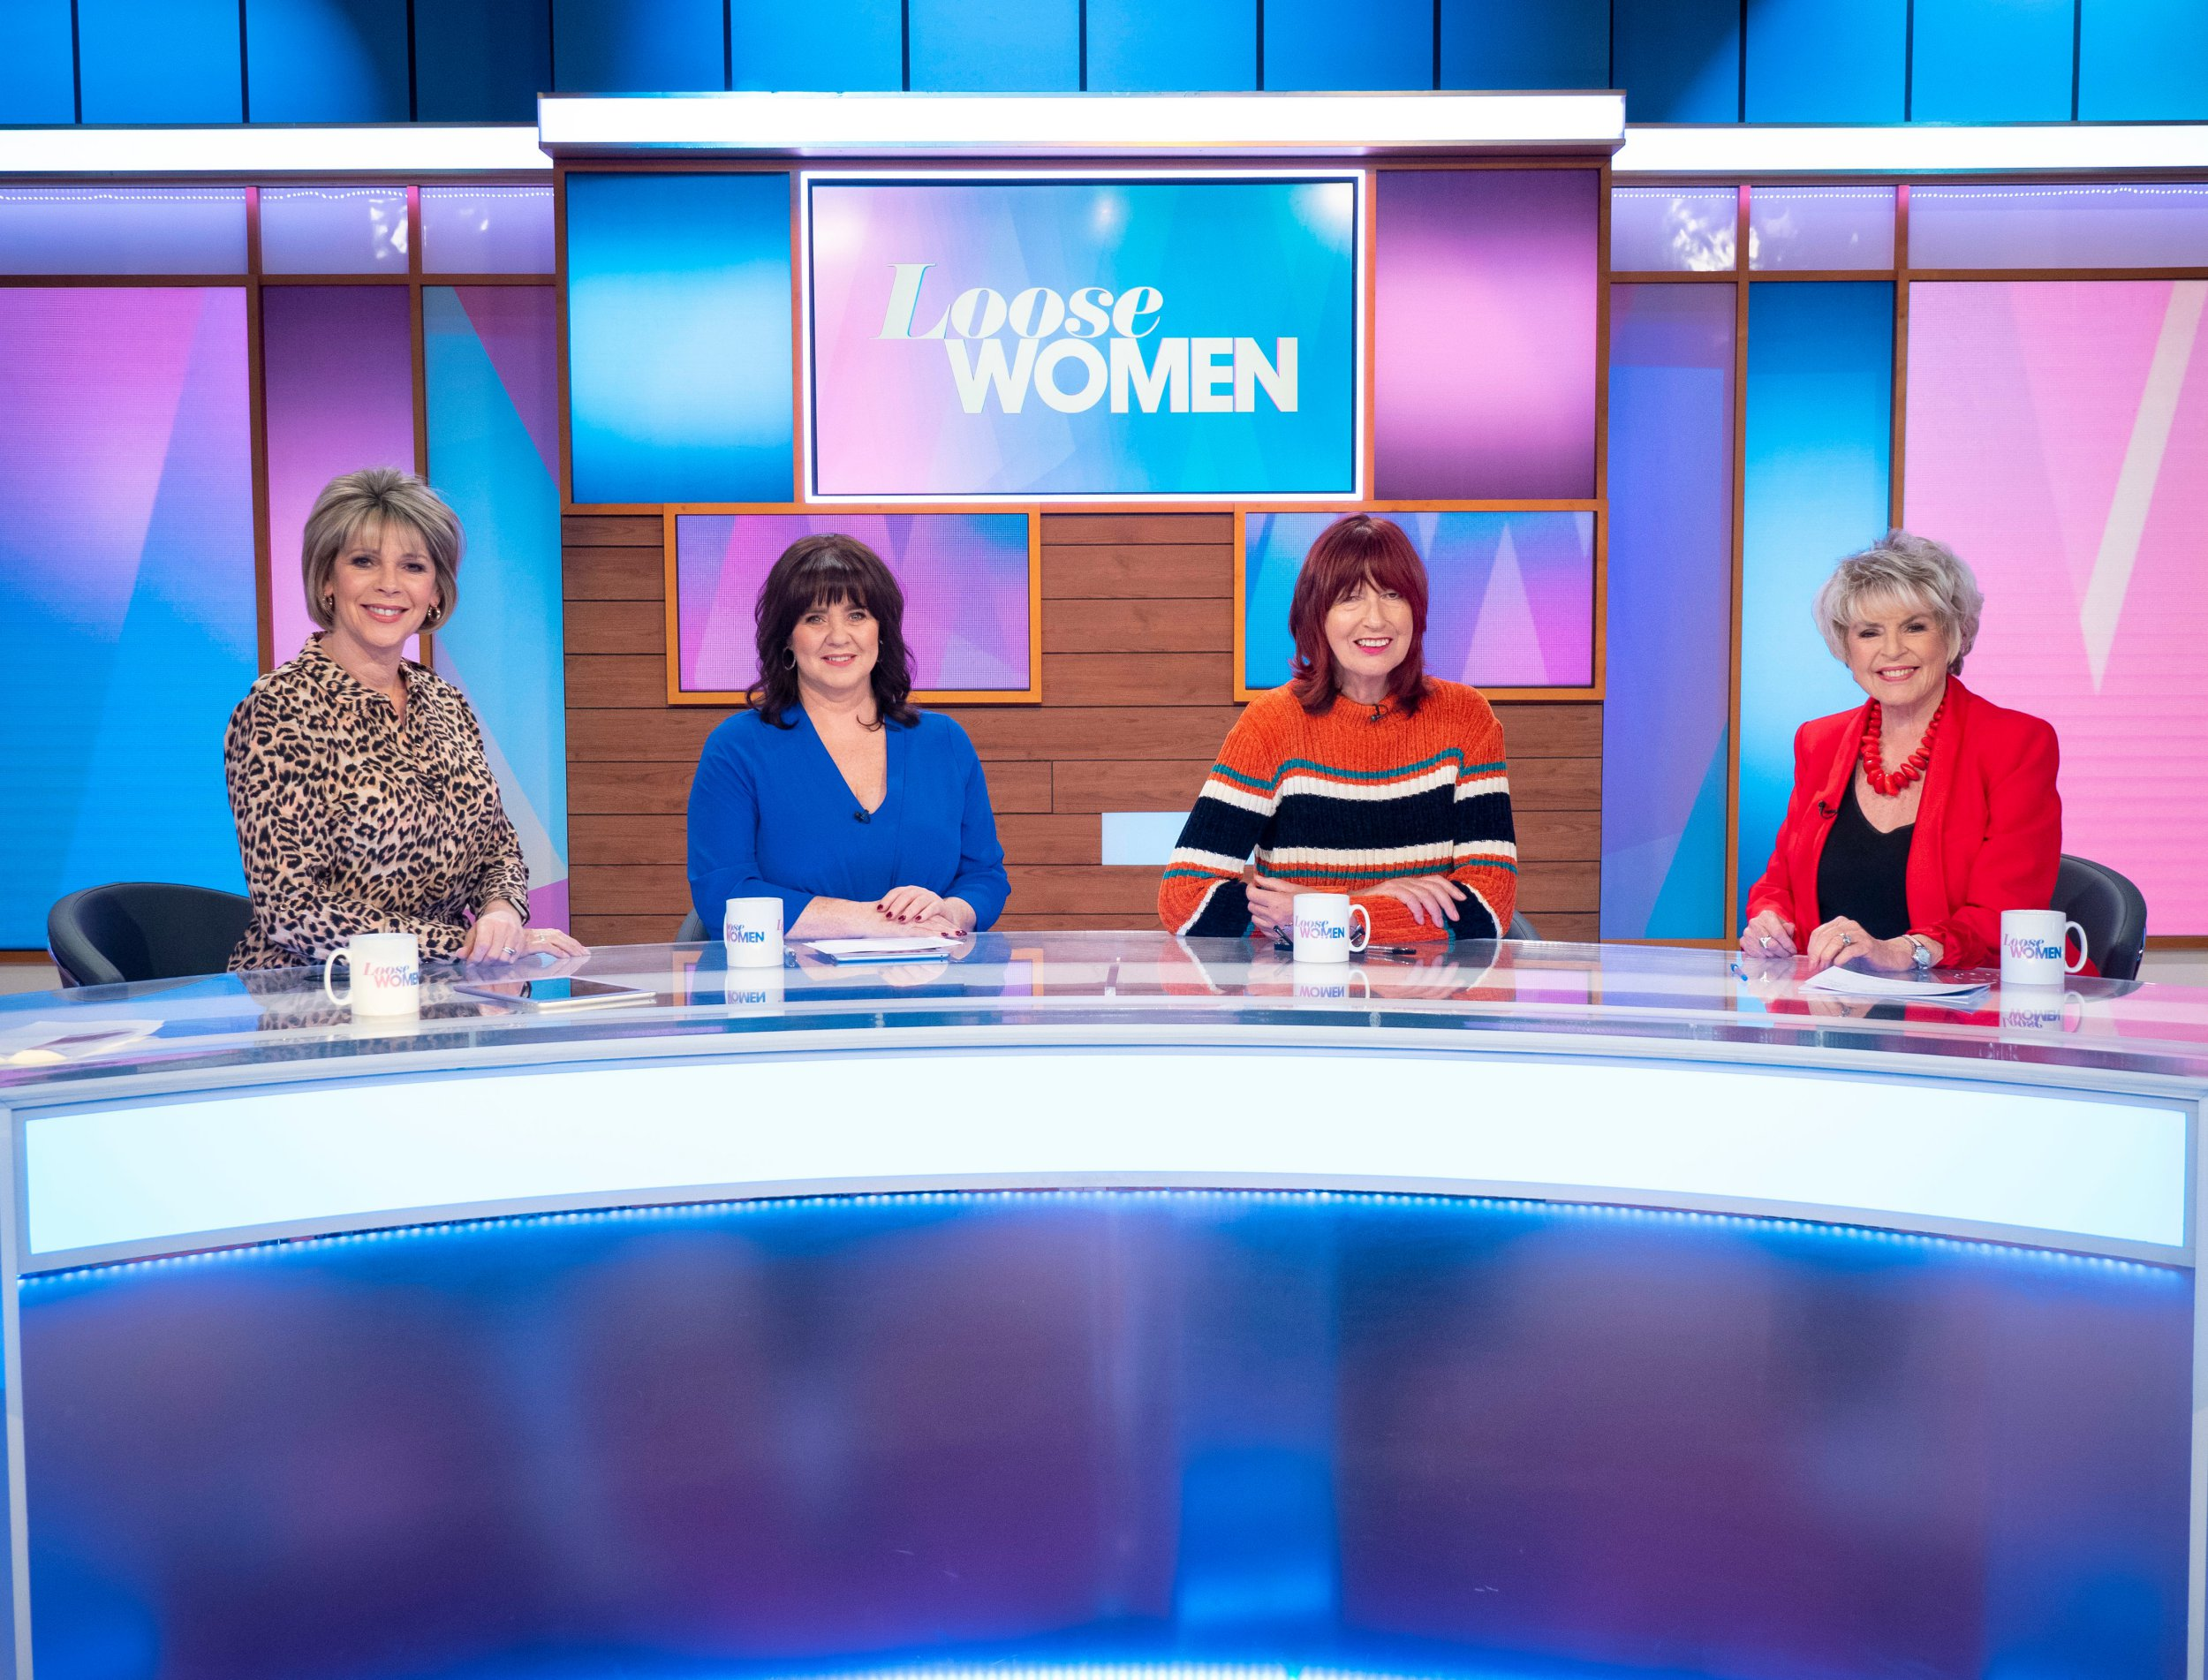 Editorial use only Mandatory Credit: Photo by Ken McKay/ITV/REX (10159951b) Ruth Langsford, Coleen Nolan, Janet Street-Porter and Gloria Hunniford 'Loose Women' TV show, London, UK - 19 Mar 2019